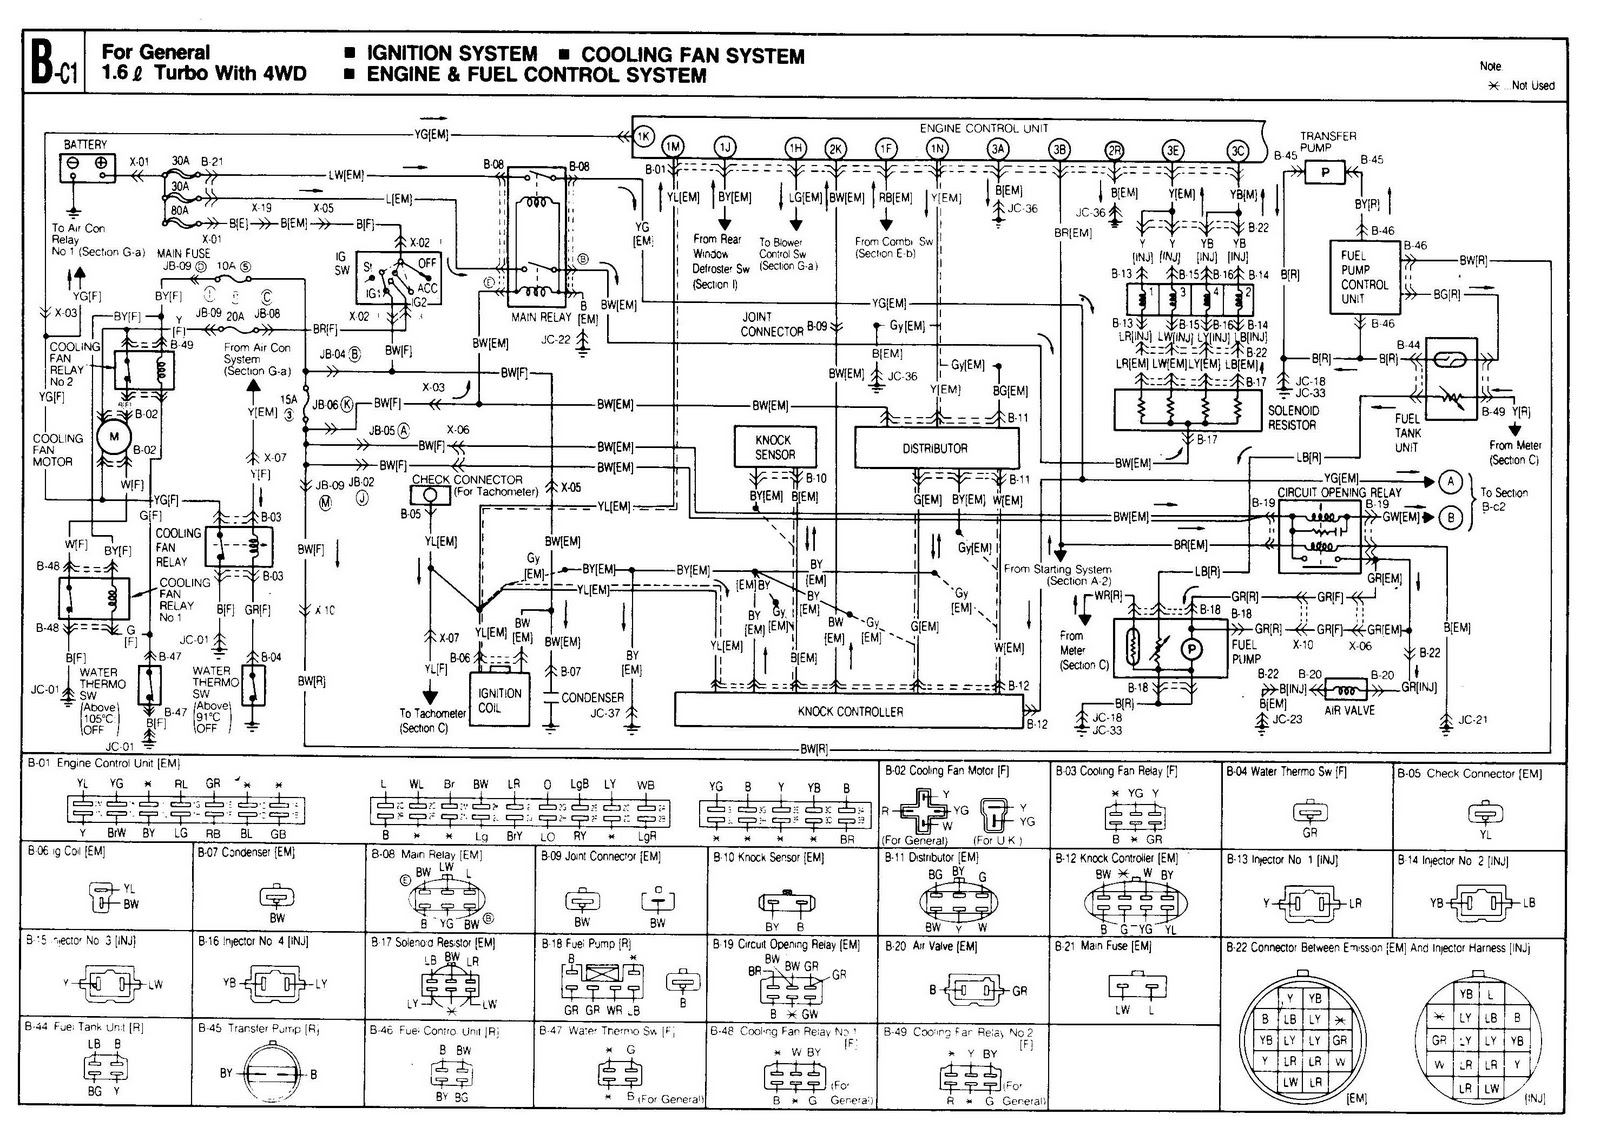 2009 Mazda 6 Wiring Diagram